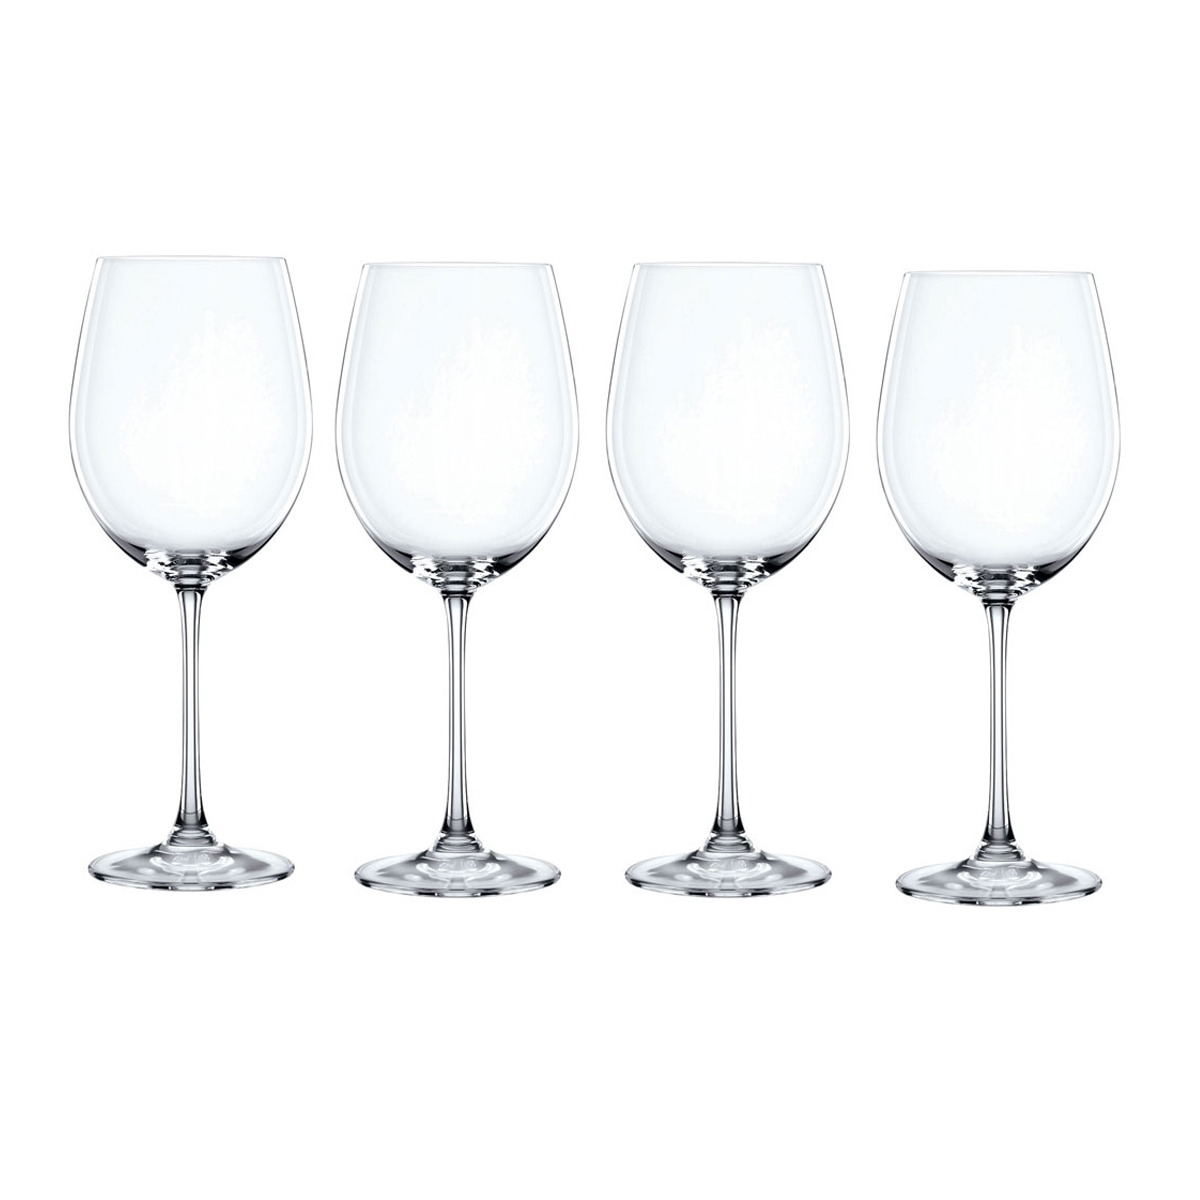 Nachtmann Vivendi Bordeaux, Set of 4